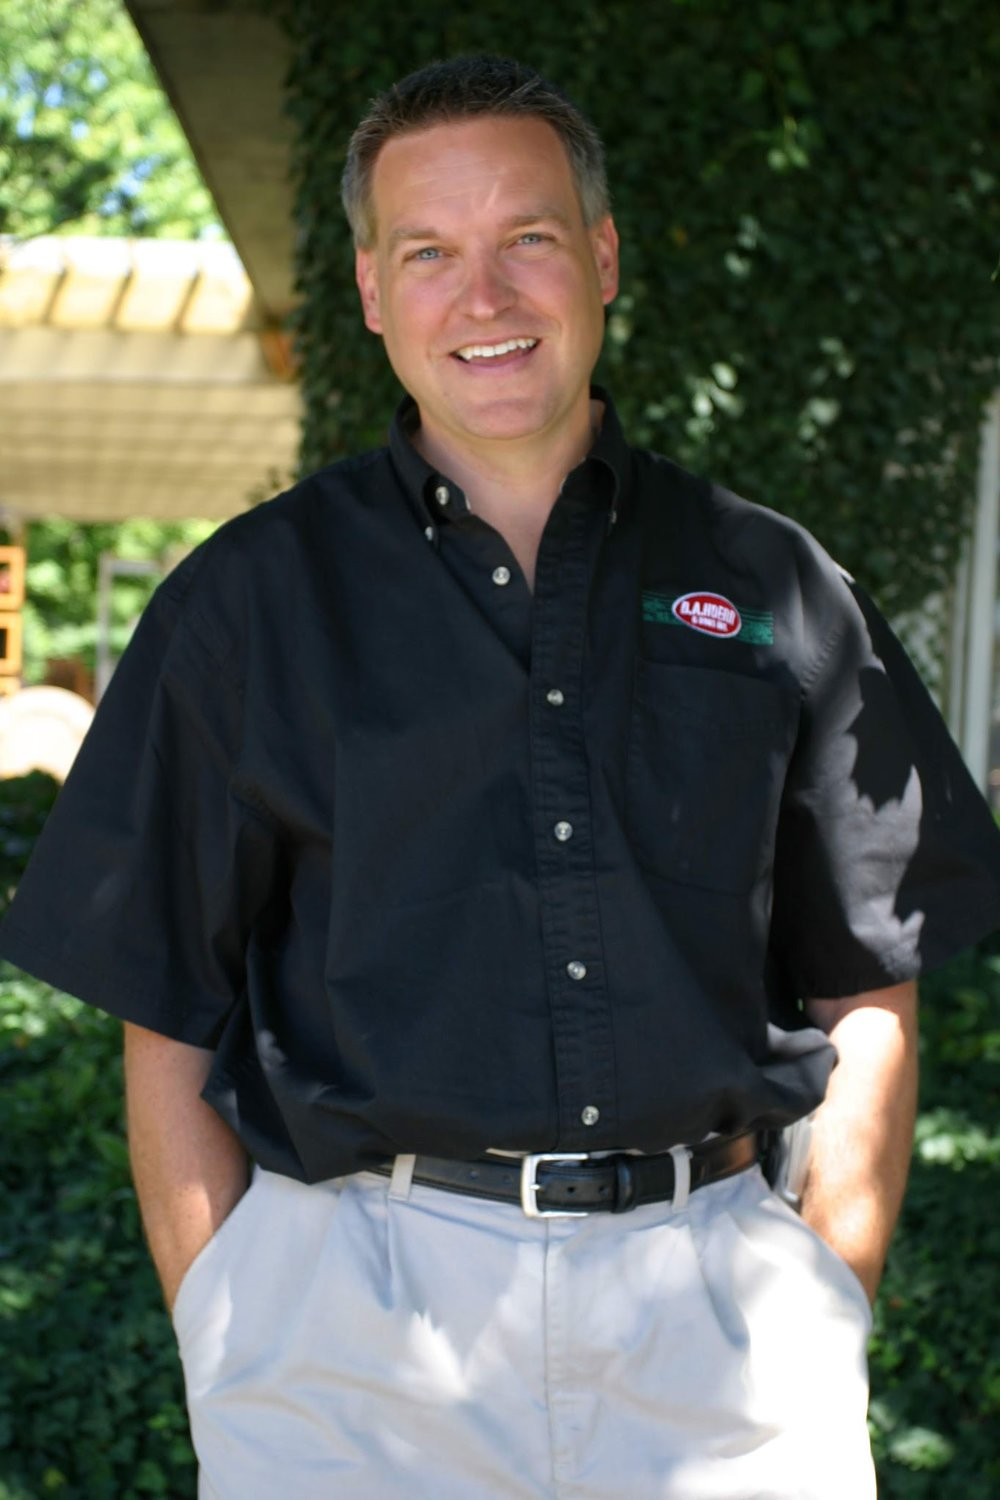 Nathan Hoerr, Current CEO